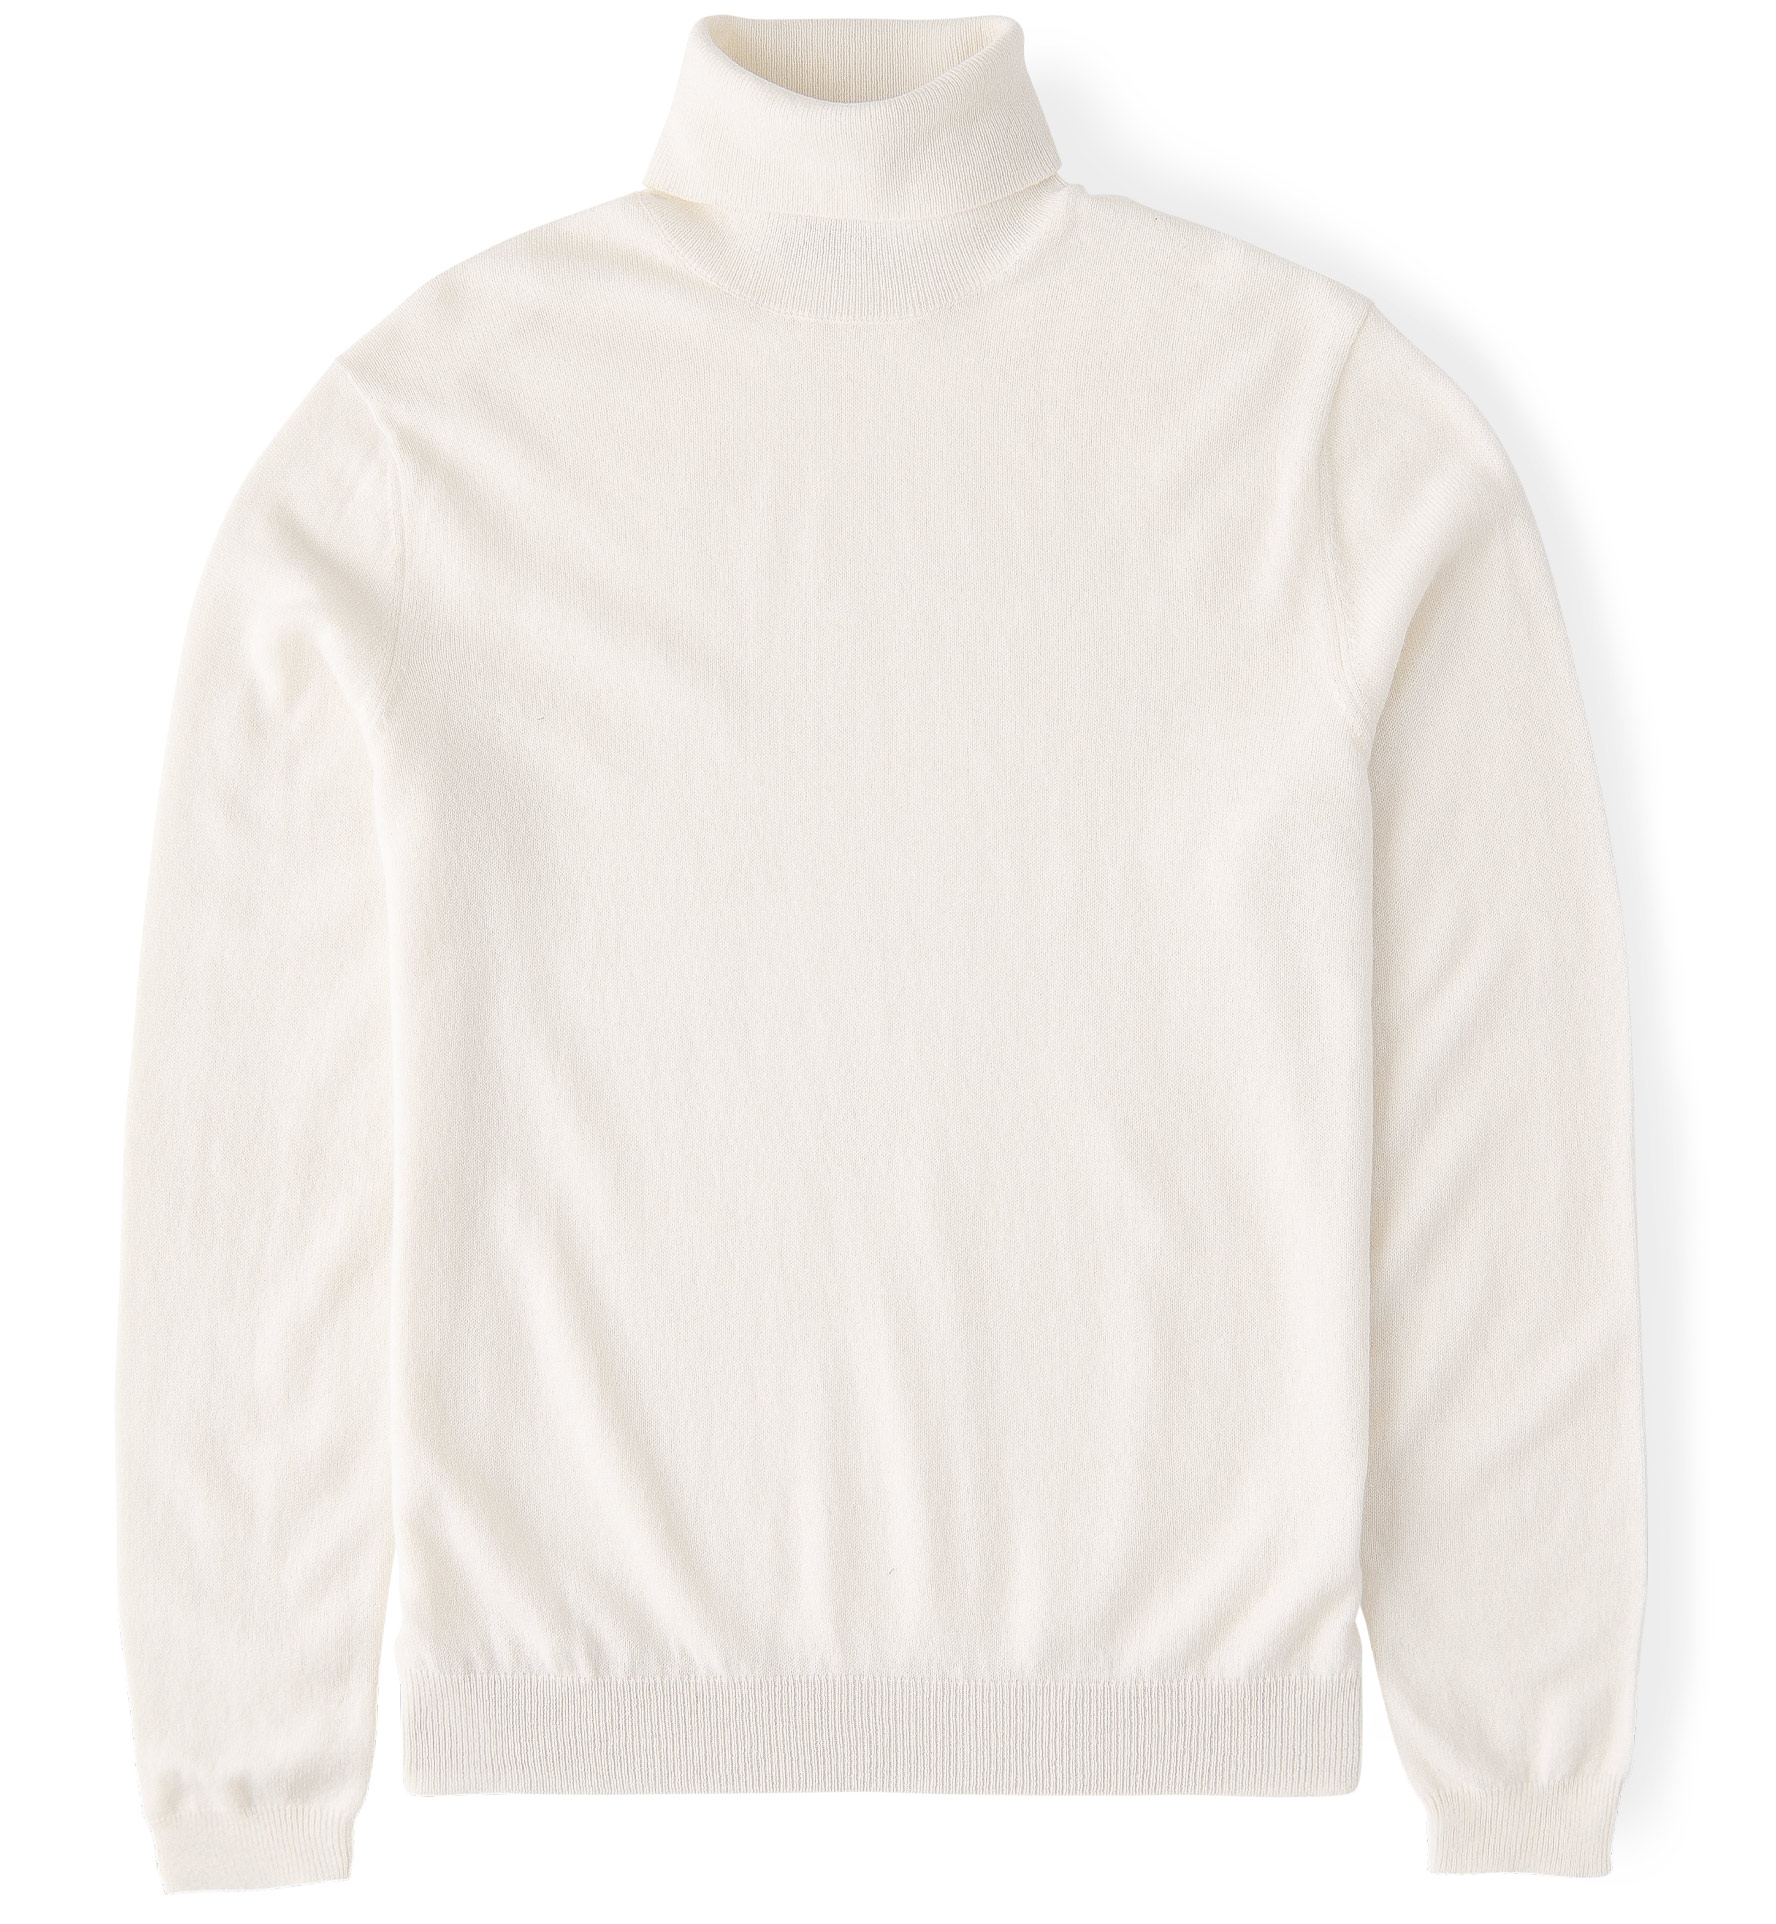 Zoom Image of Off White Cashmere Turtleneck